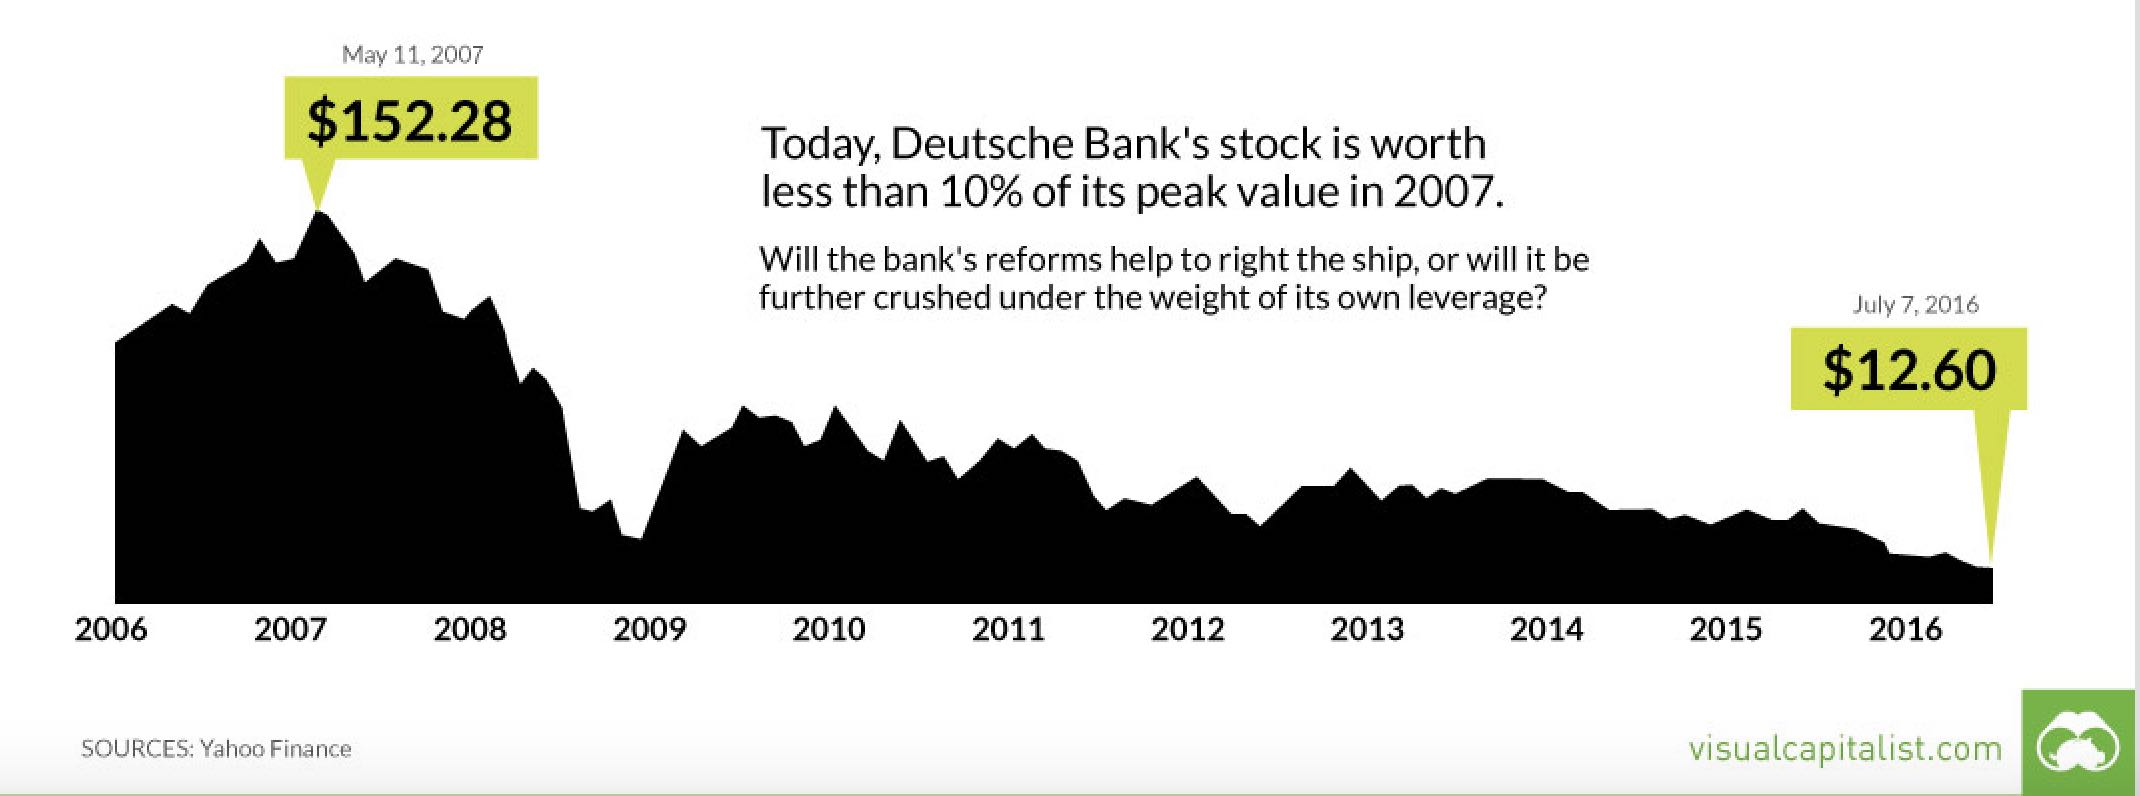 Deutsche_bank_Visualcapitalist.jpg